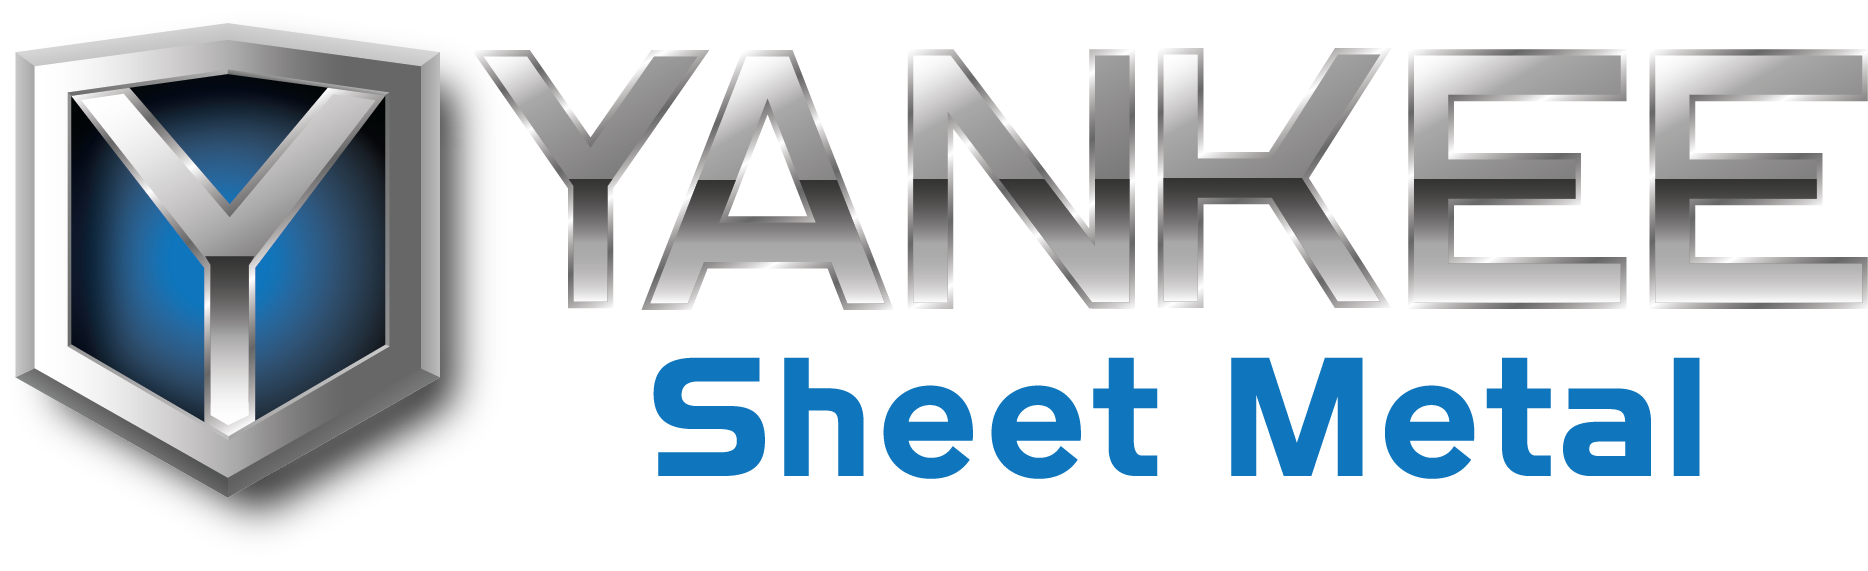 Yankee Sheet Metal